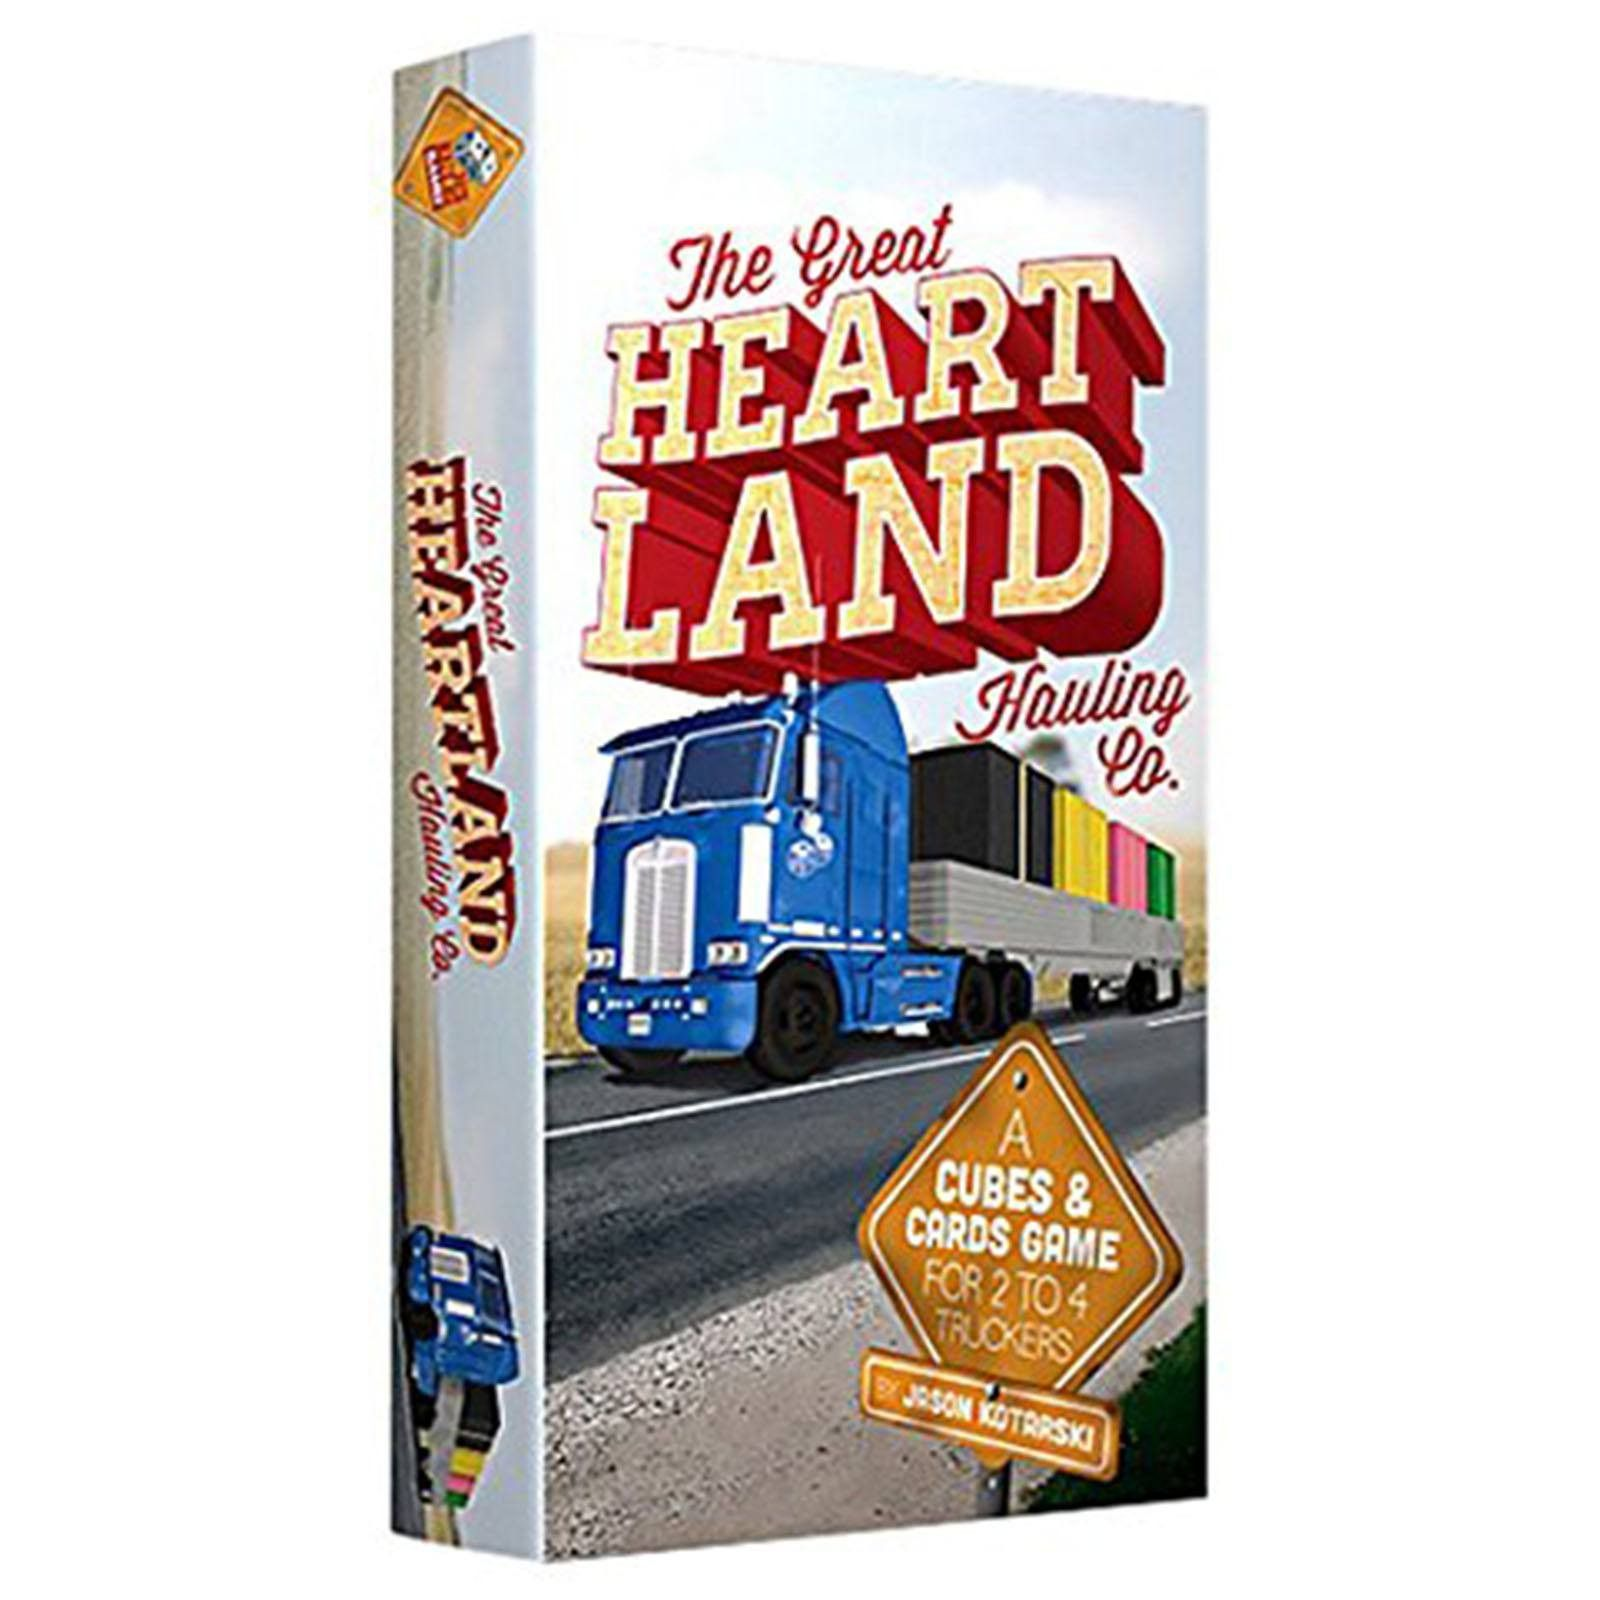 Card Games The Great Heartland The Card Game Card